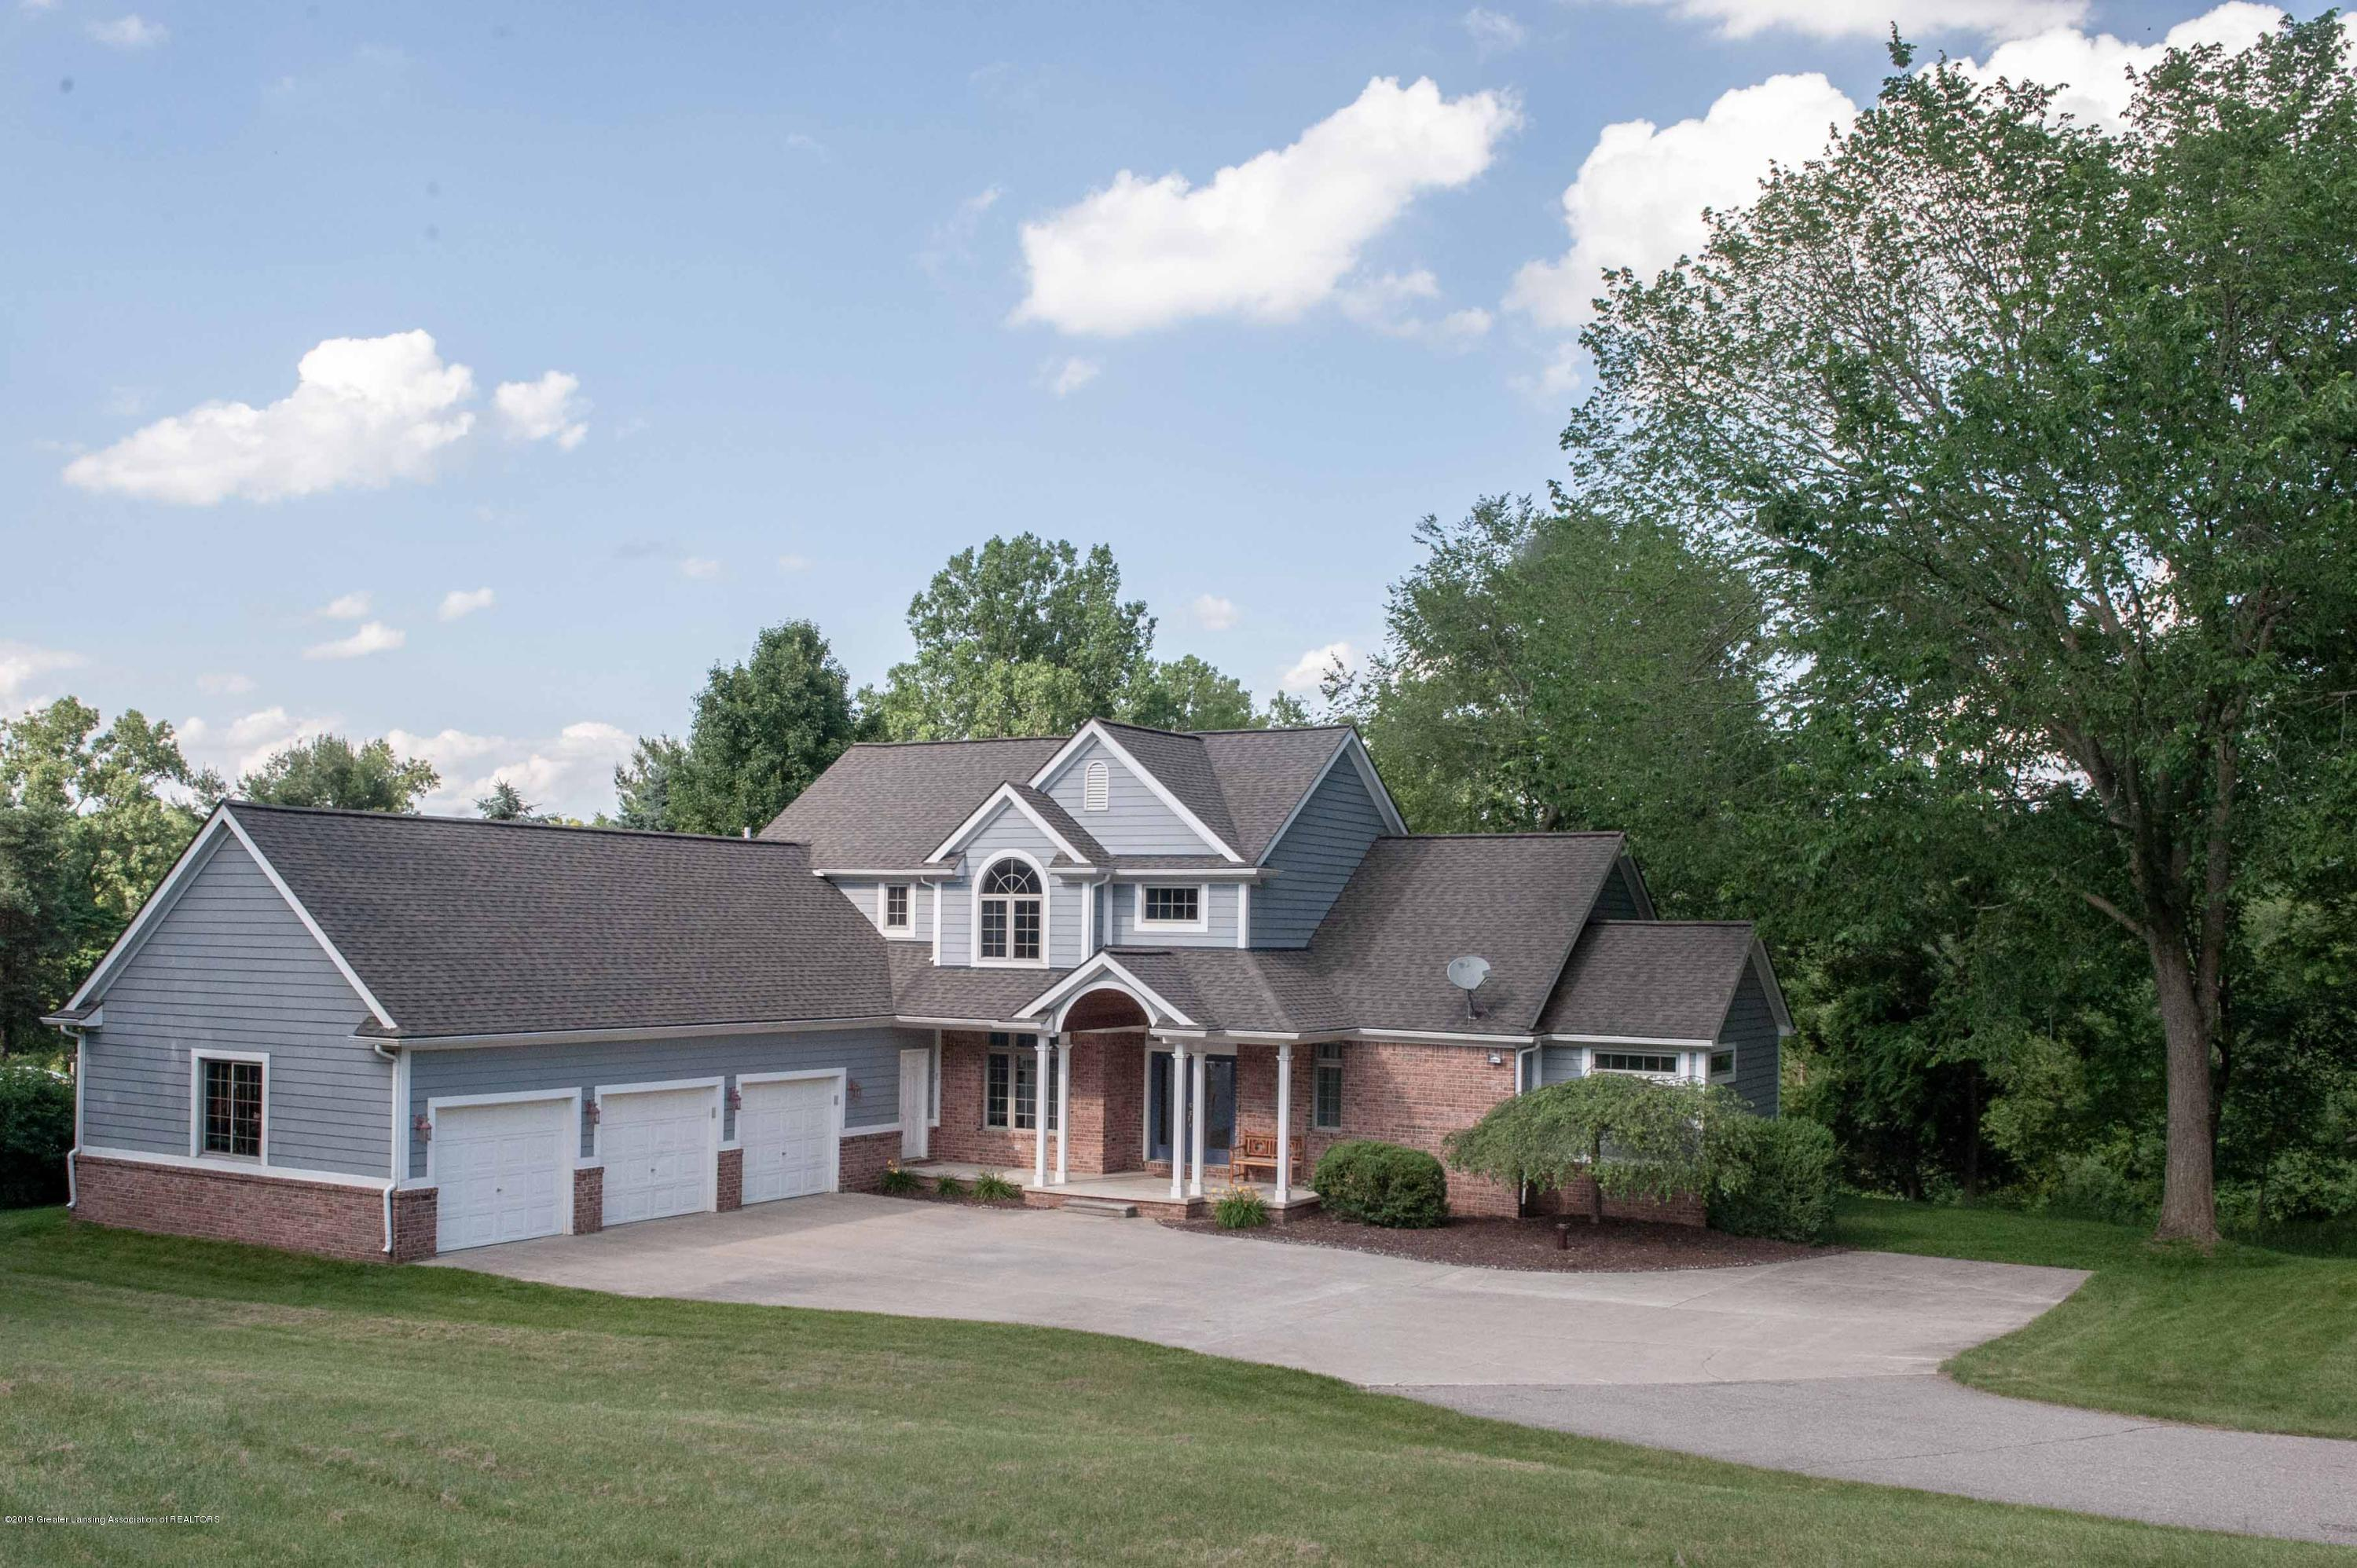 8115 Gregory Rd - Welcome Home - 1